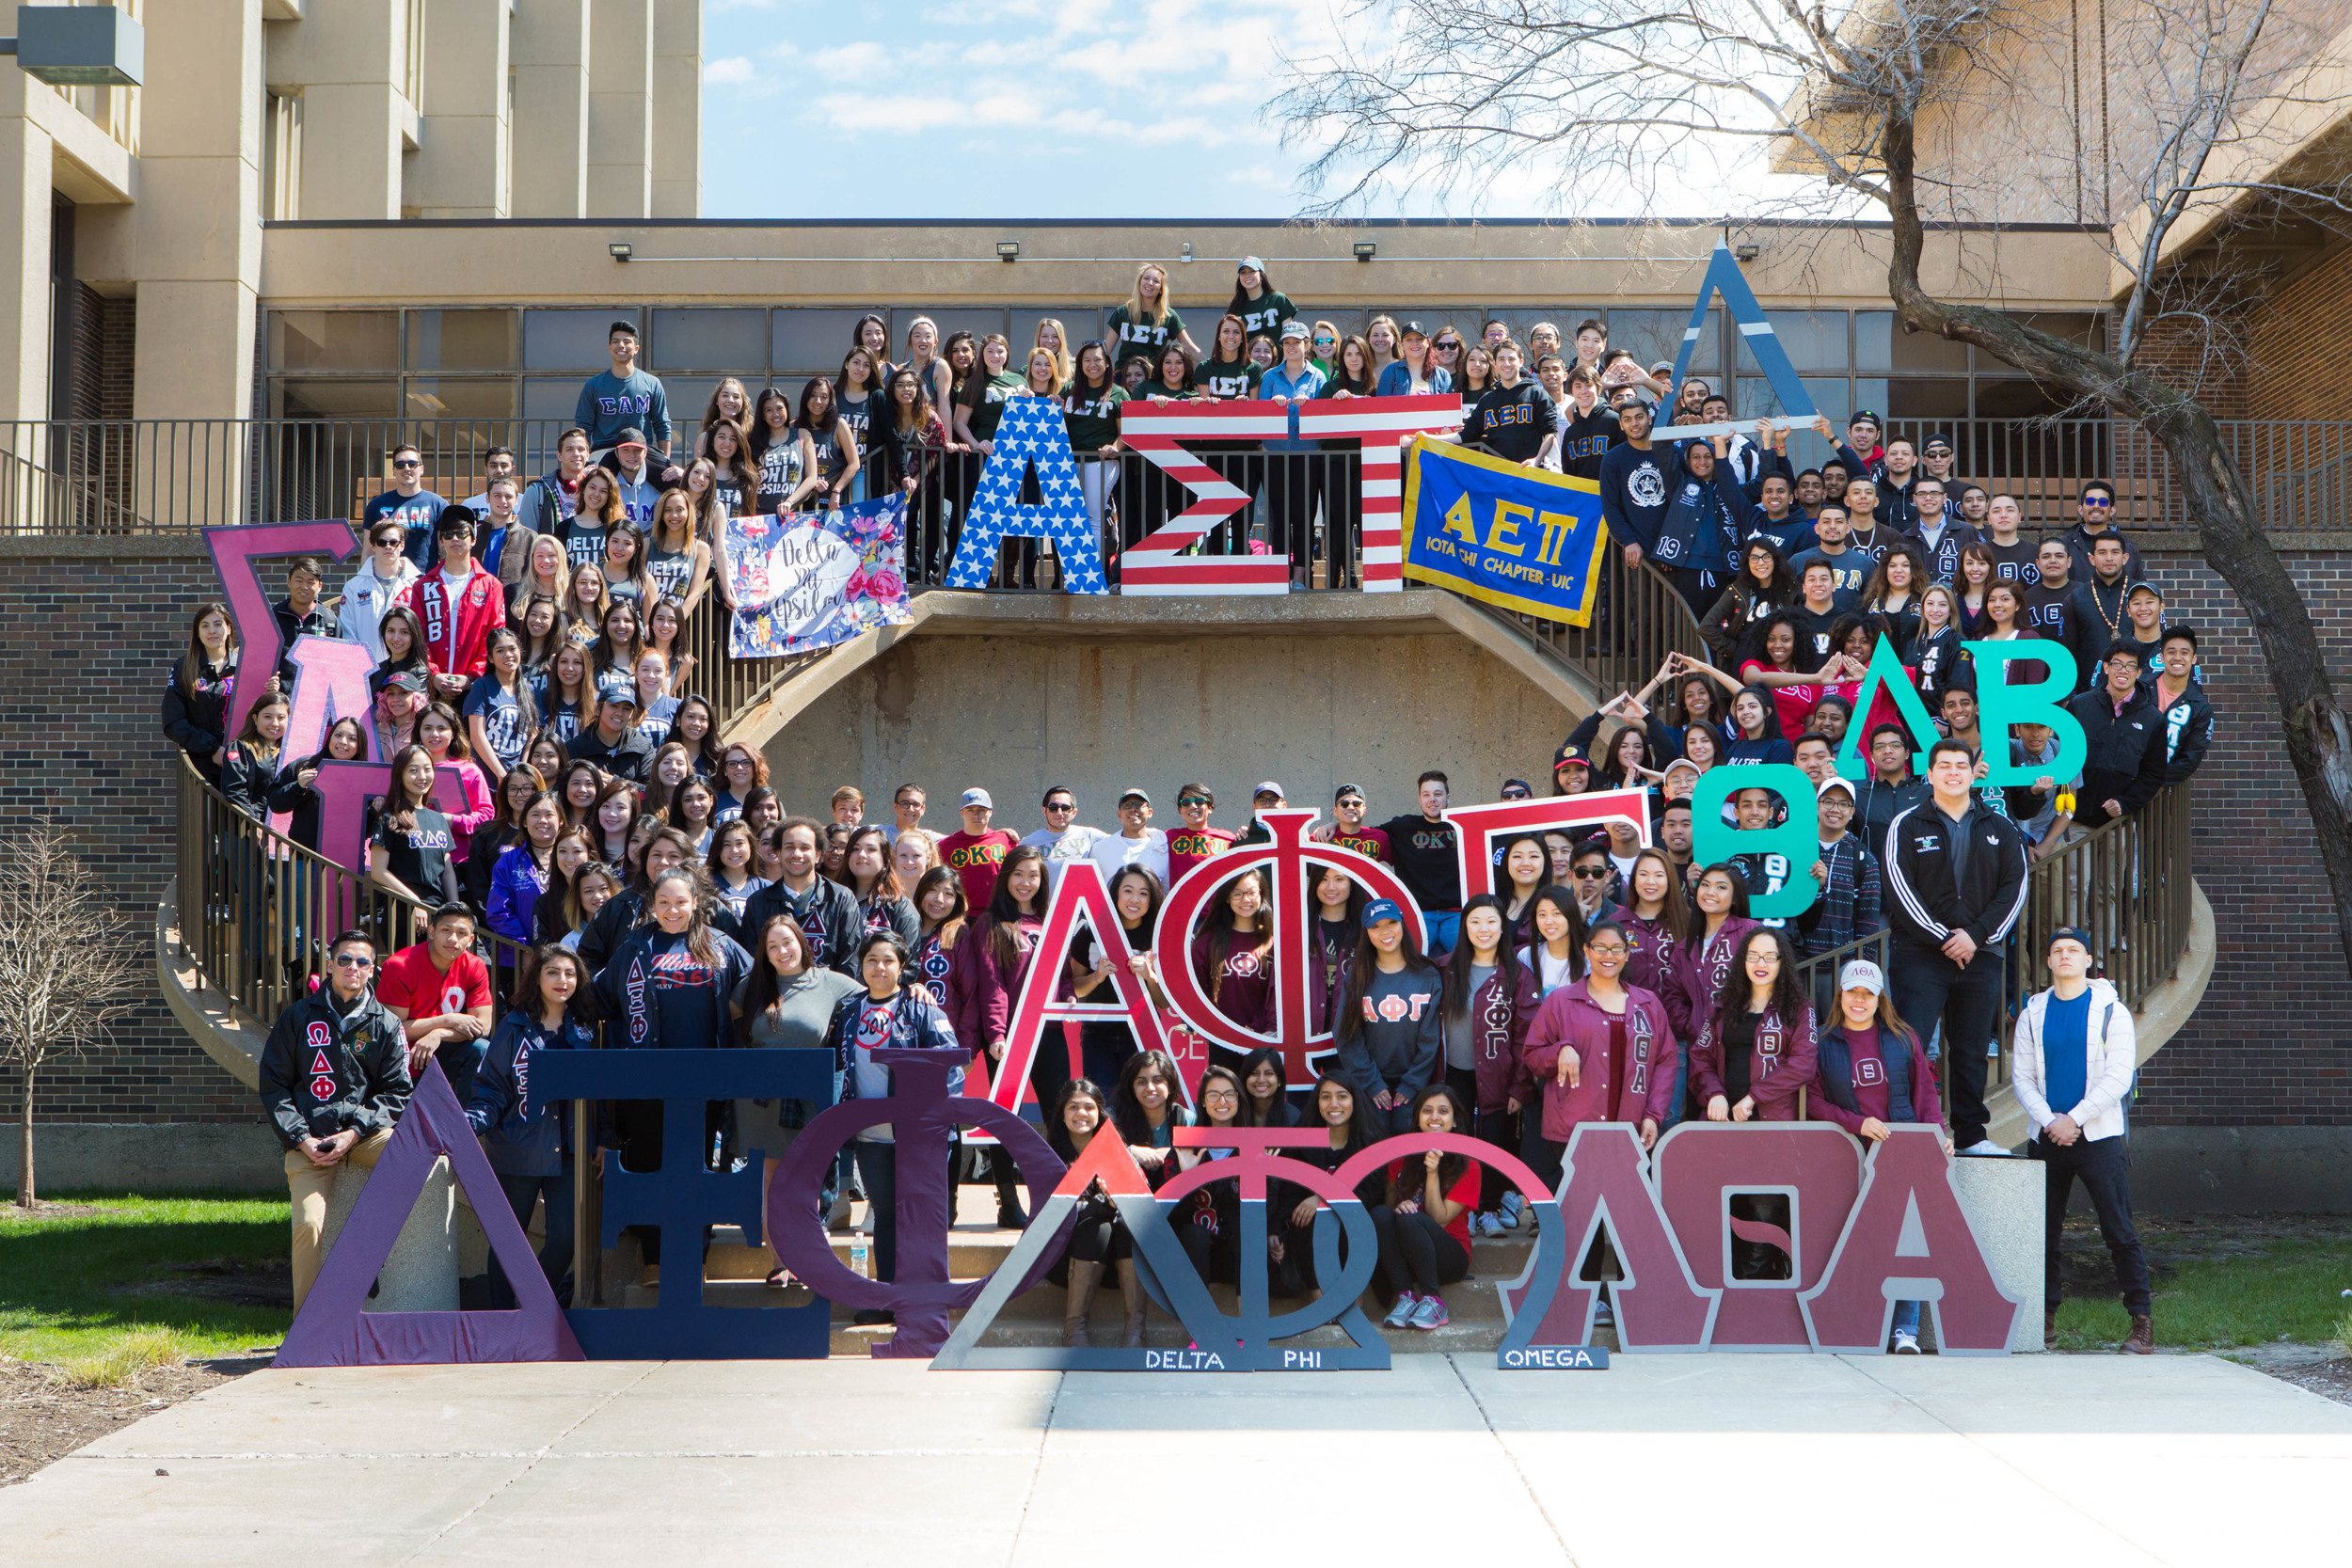 001_003_Greek Week Unity Photo - Stairs.jpg